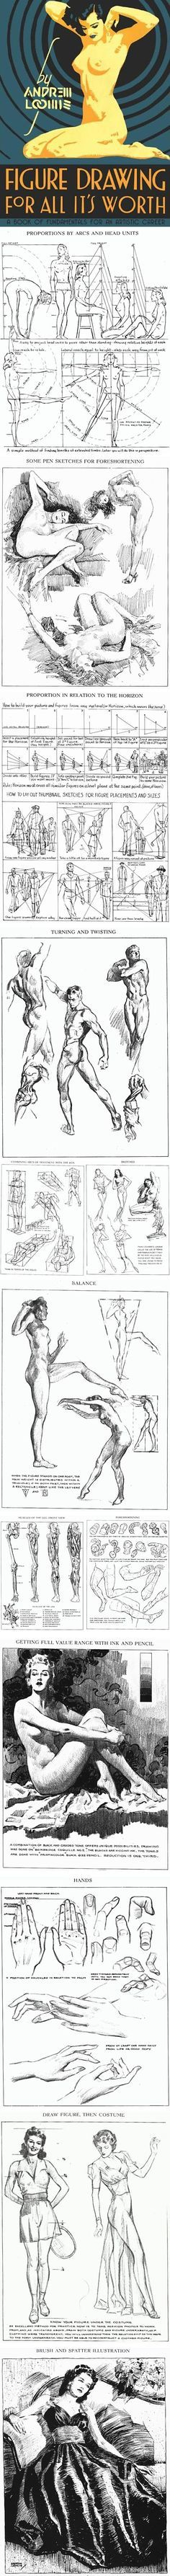 Figure Drawing for All it's Worth, Andrew Loomis